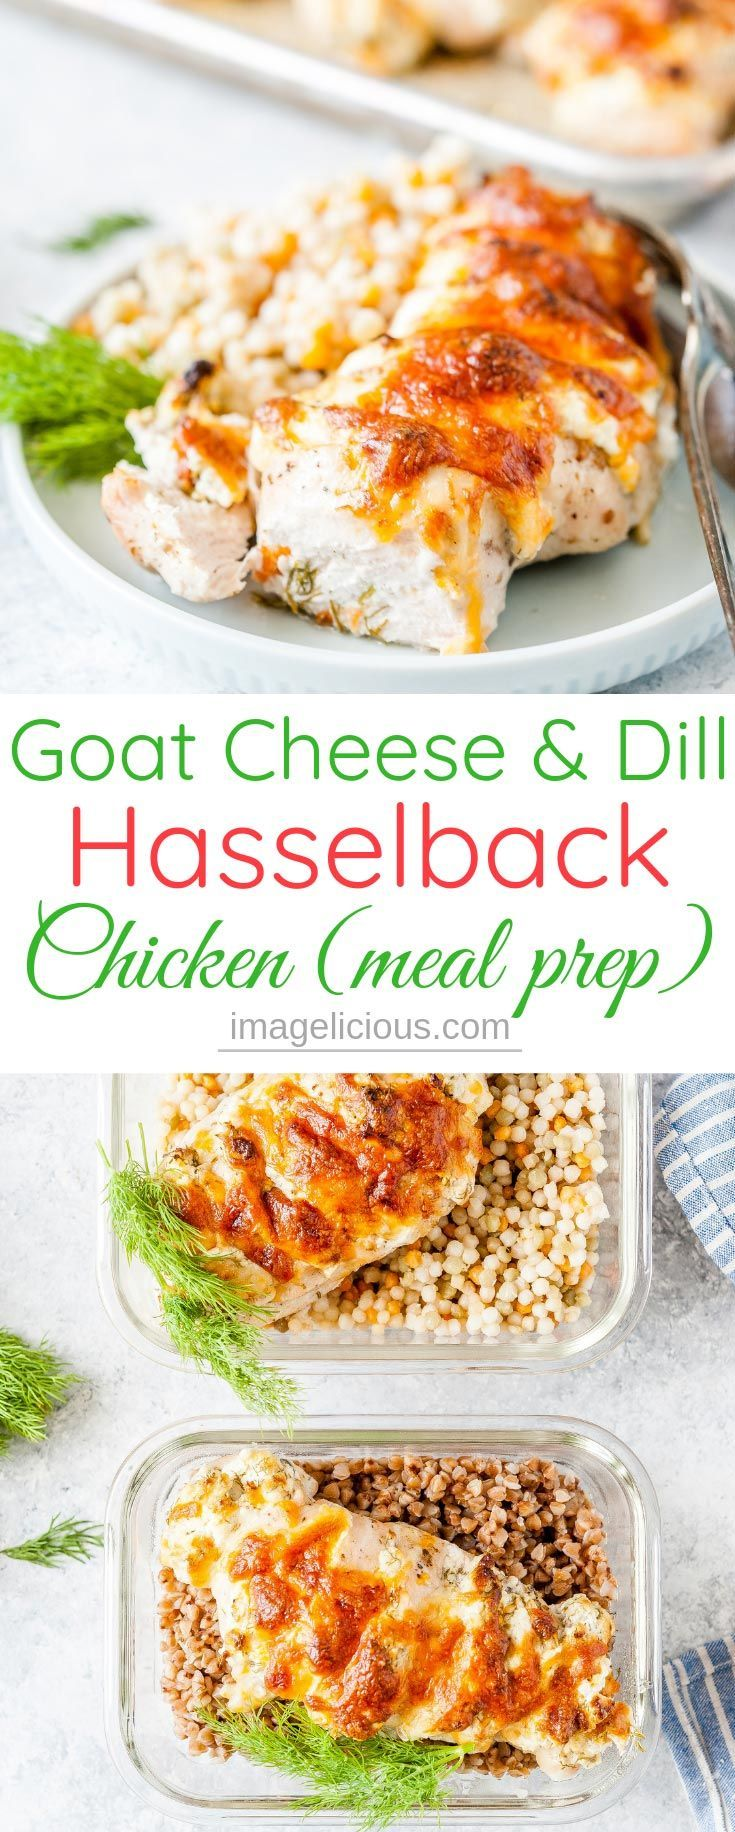 Goat Cheese and Dill Hasselback Chicken - Imagelicious.com